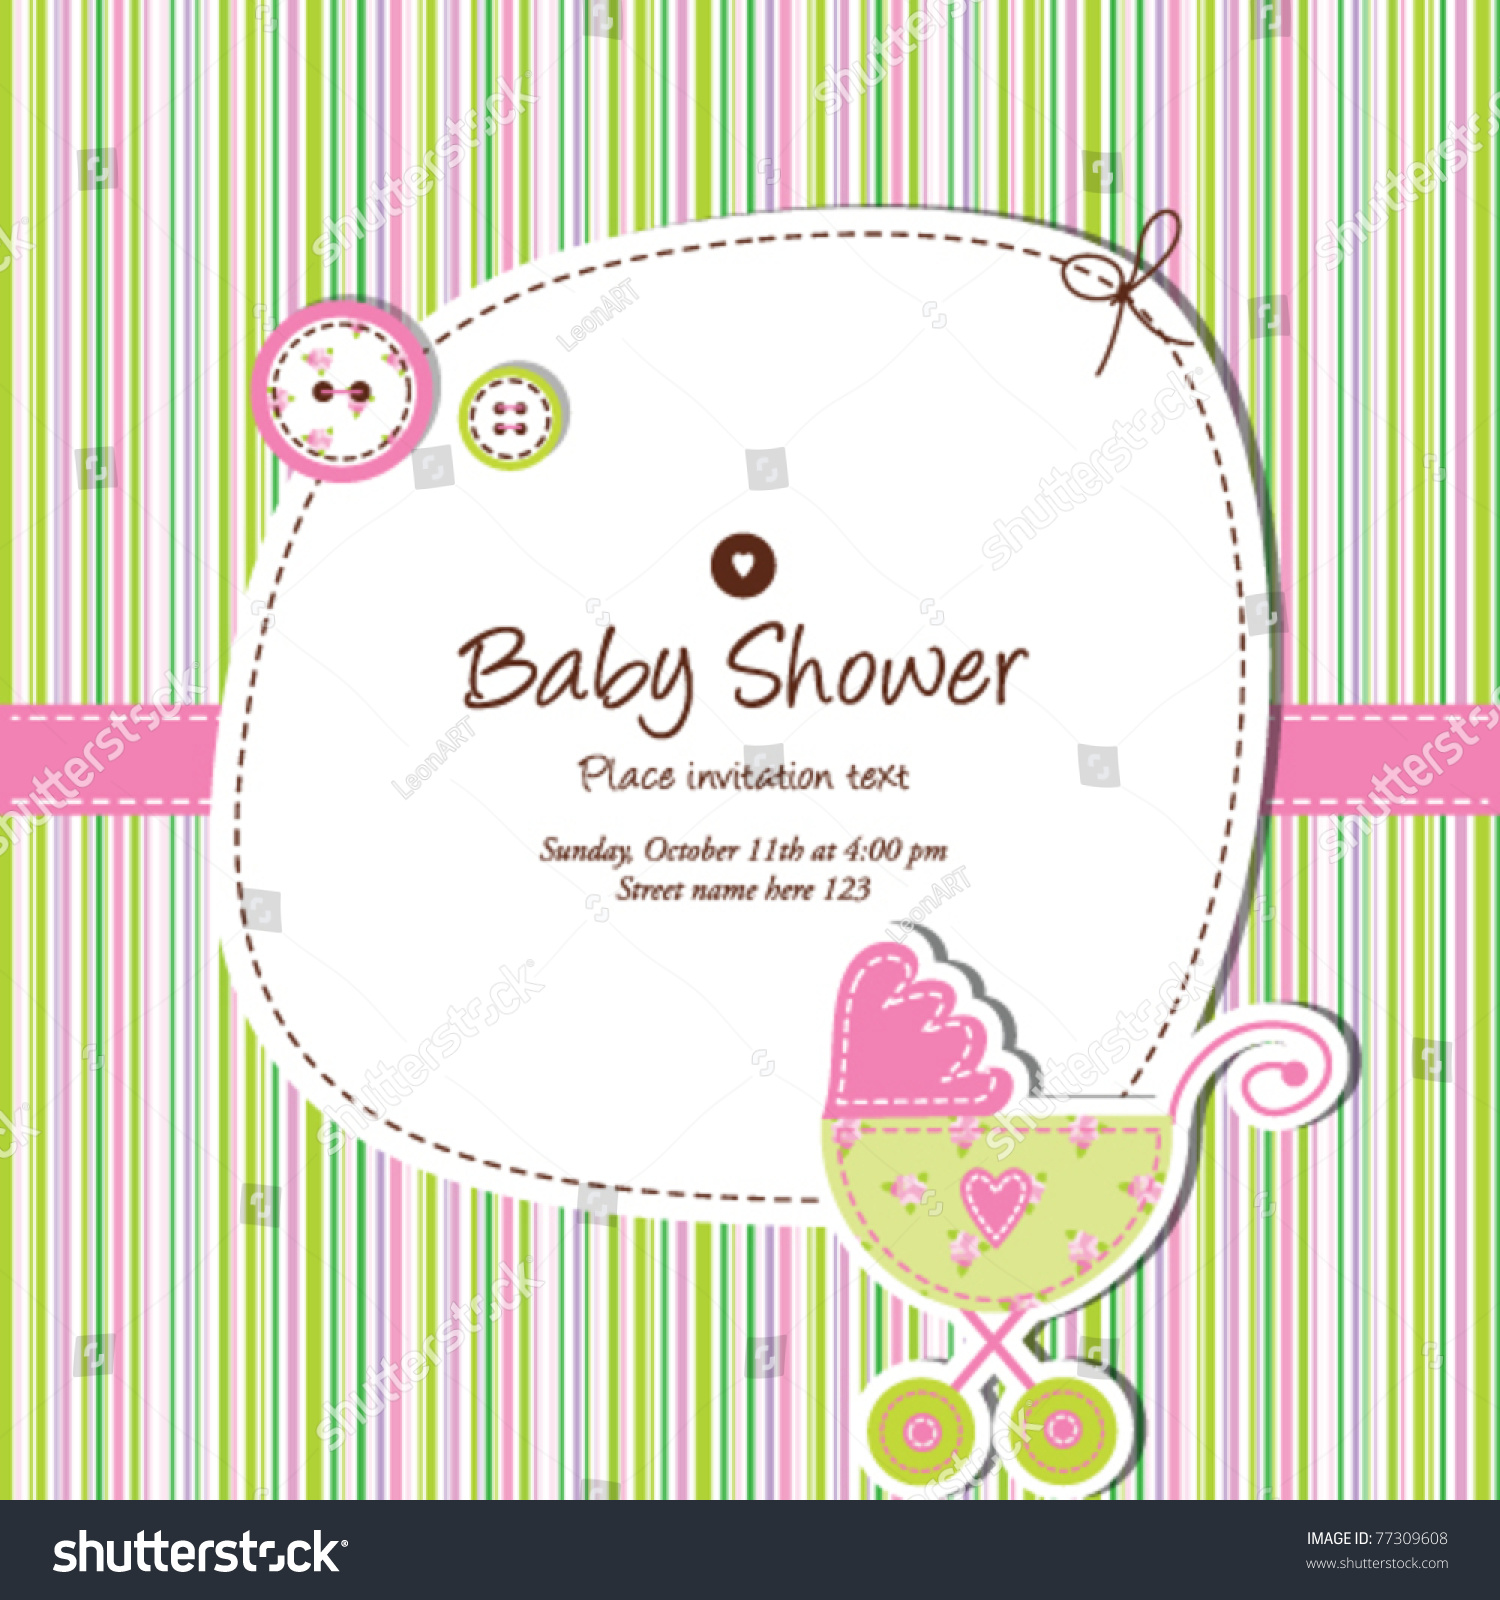 Baby Shower Invitation Template cute Vector Stock Vector